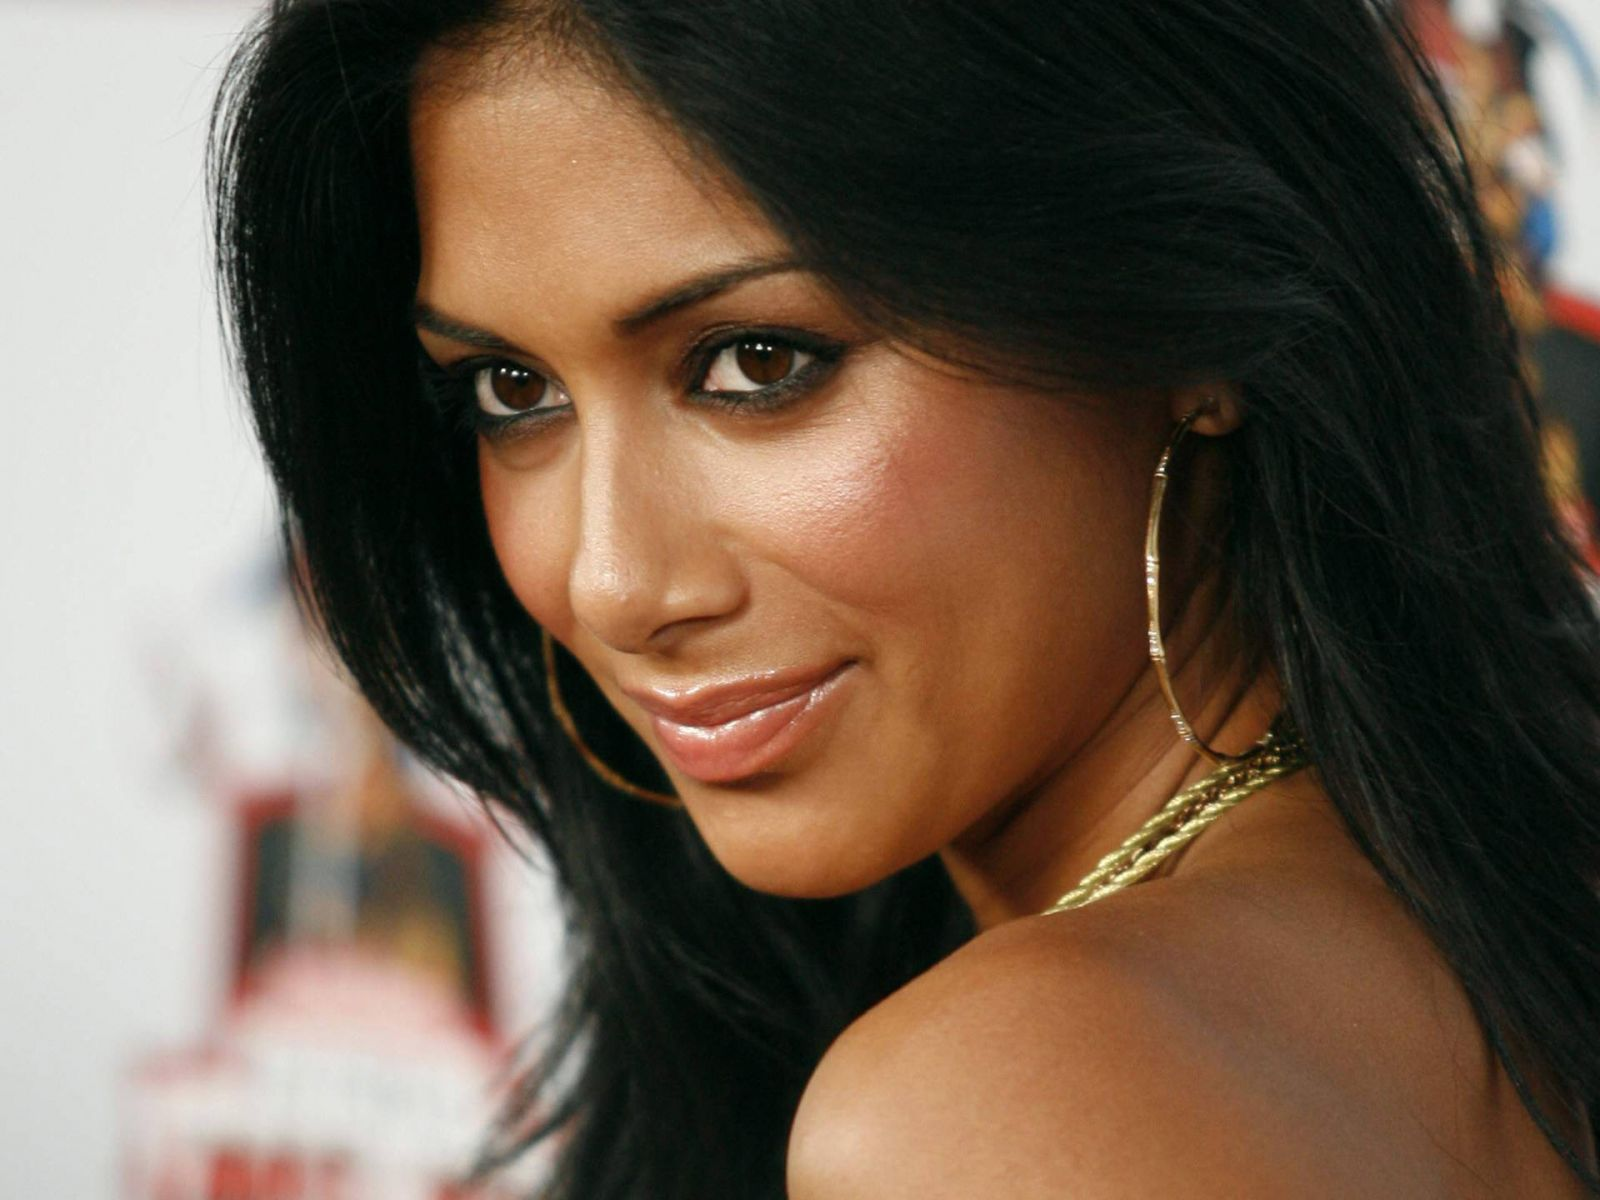 Nicole Scherzinger photo 705 of 2854 pics, wallpaper ... Nicole Scherzinger